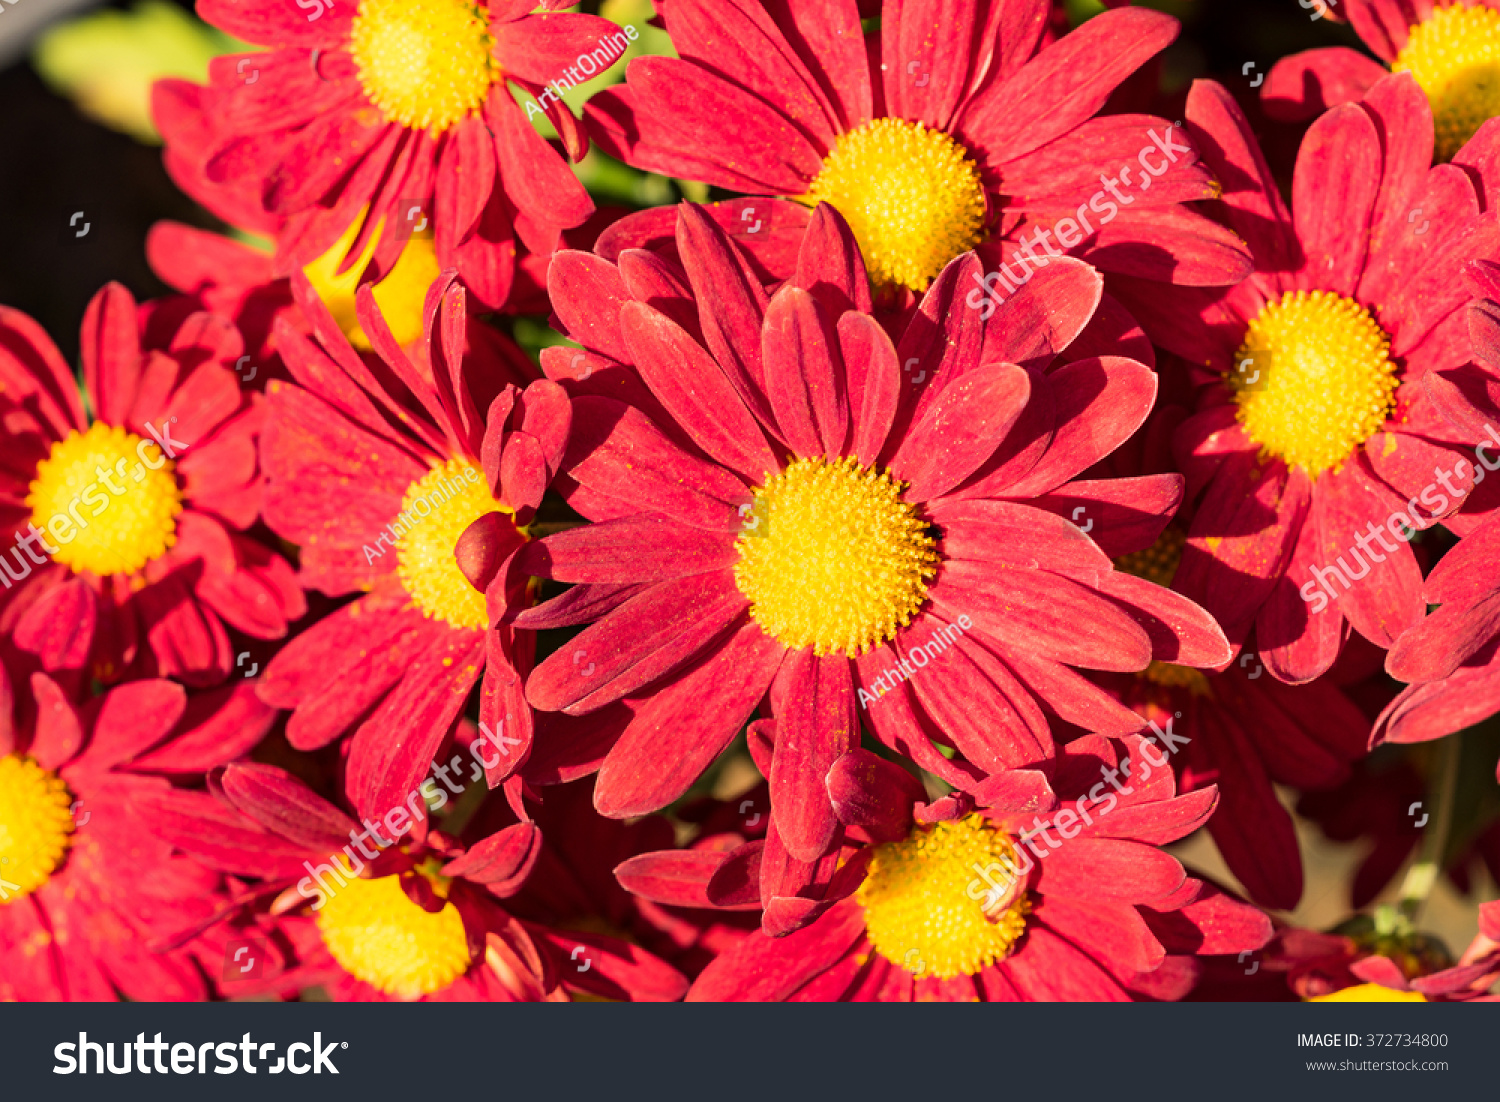 Beautiful Red Flowers Yellow Pollen Natural Stock Photo (Royalty ...